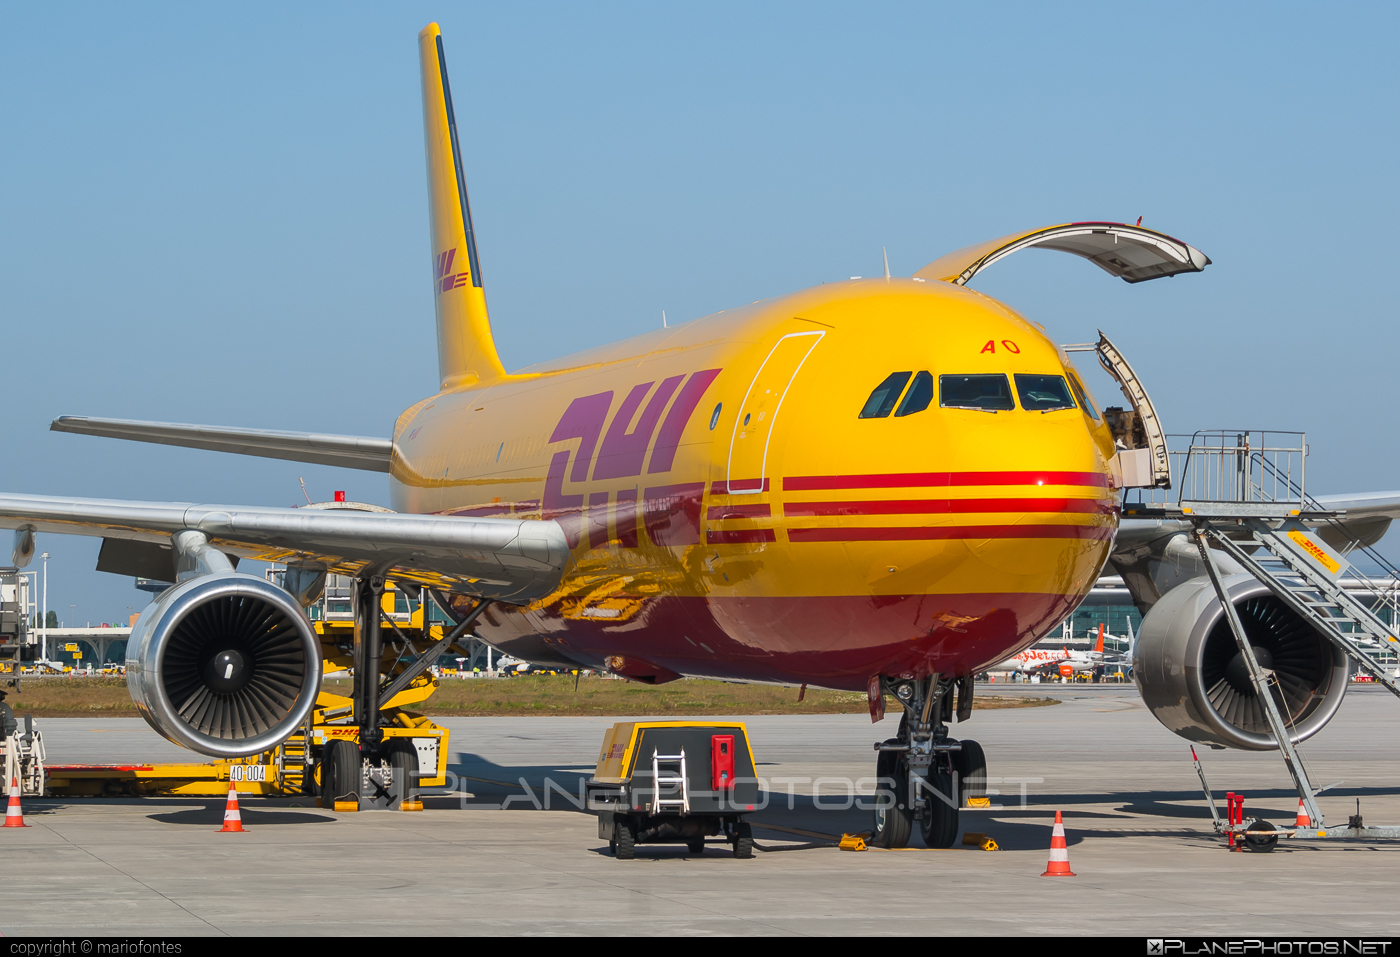 Airbus A300F4-622R - D-AEAO operated by DHL (European Air Transport) #a300 #airbus